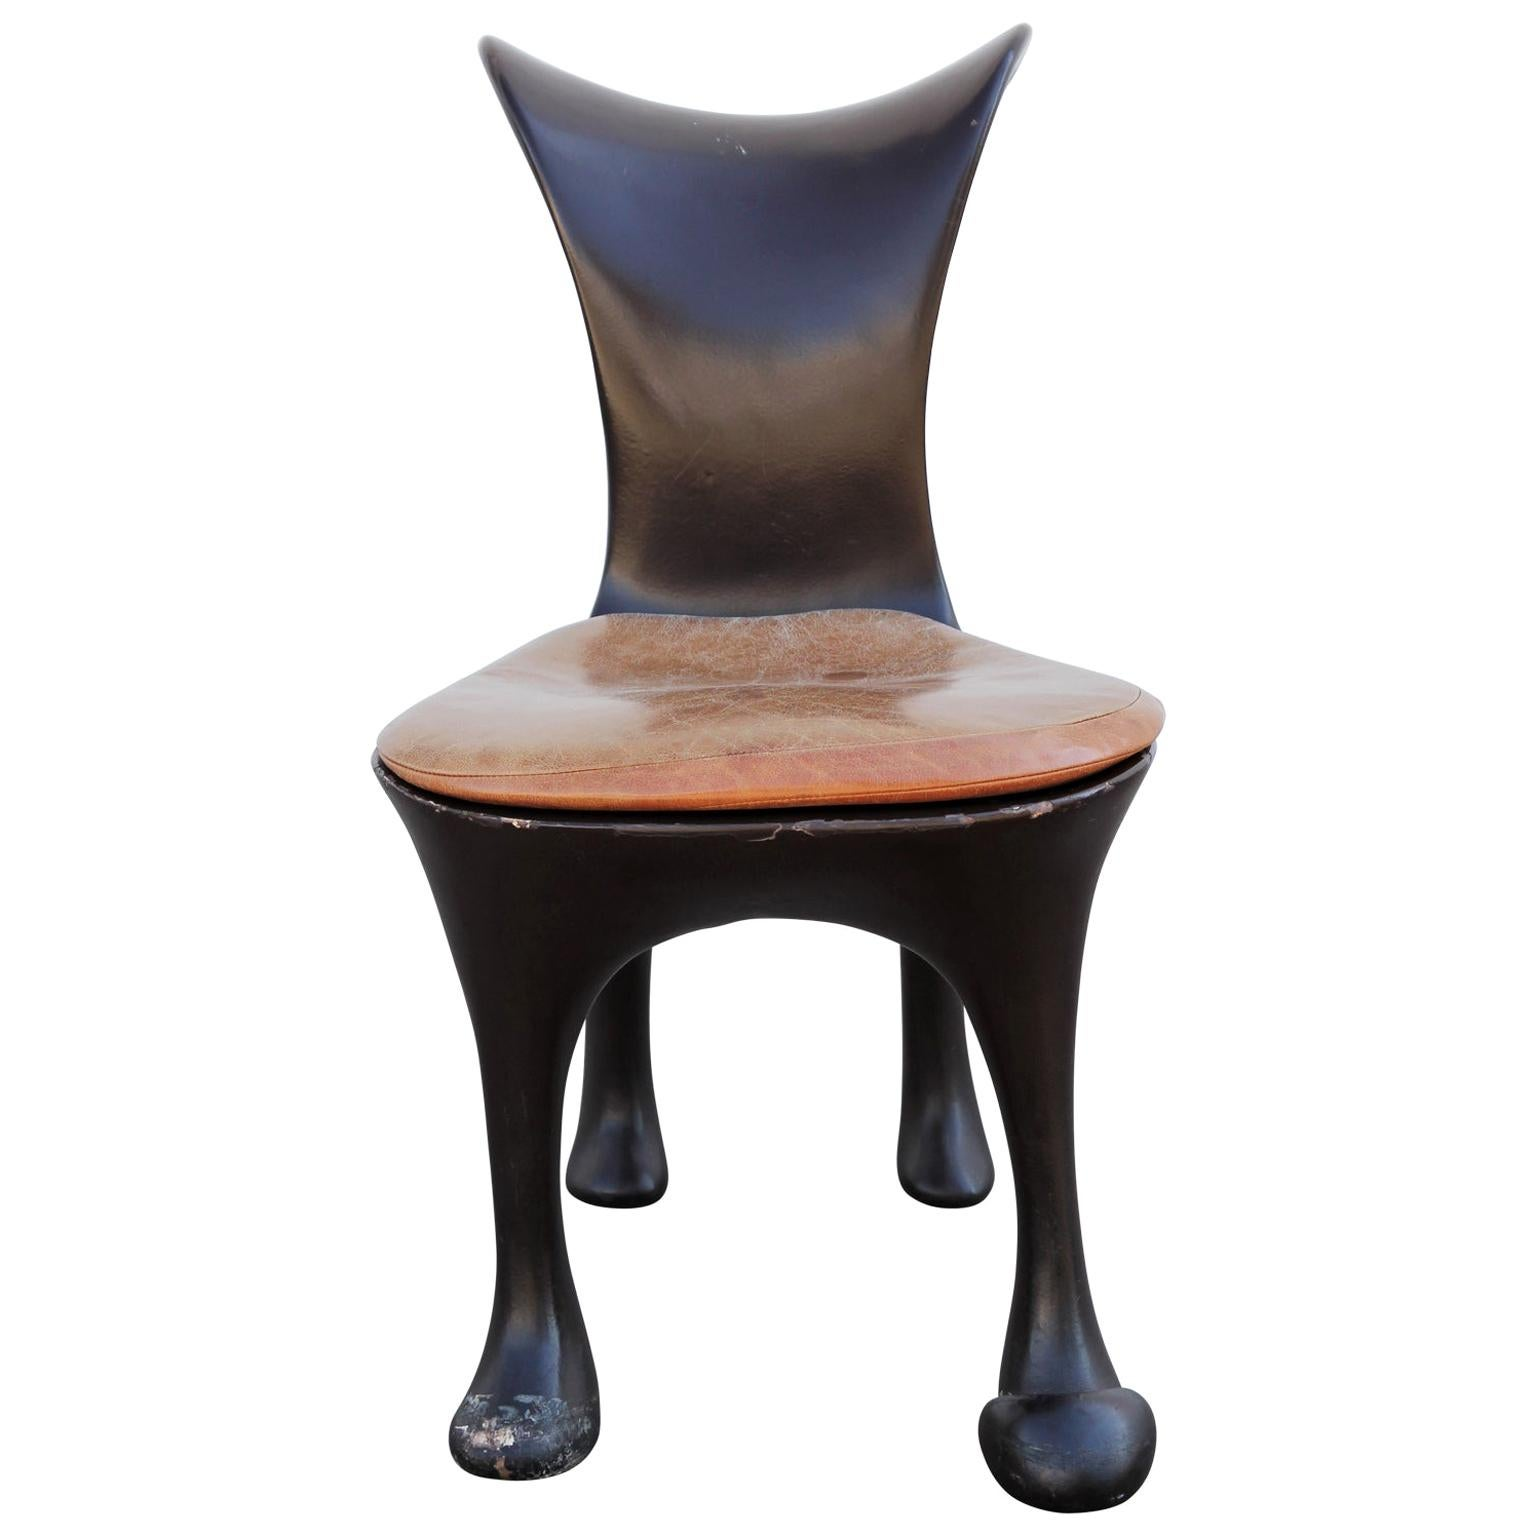 Hoodie Dining Chairs 'With Skinny Jeans' by Jordan Mozer